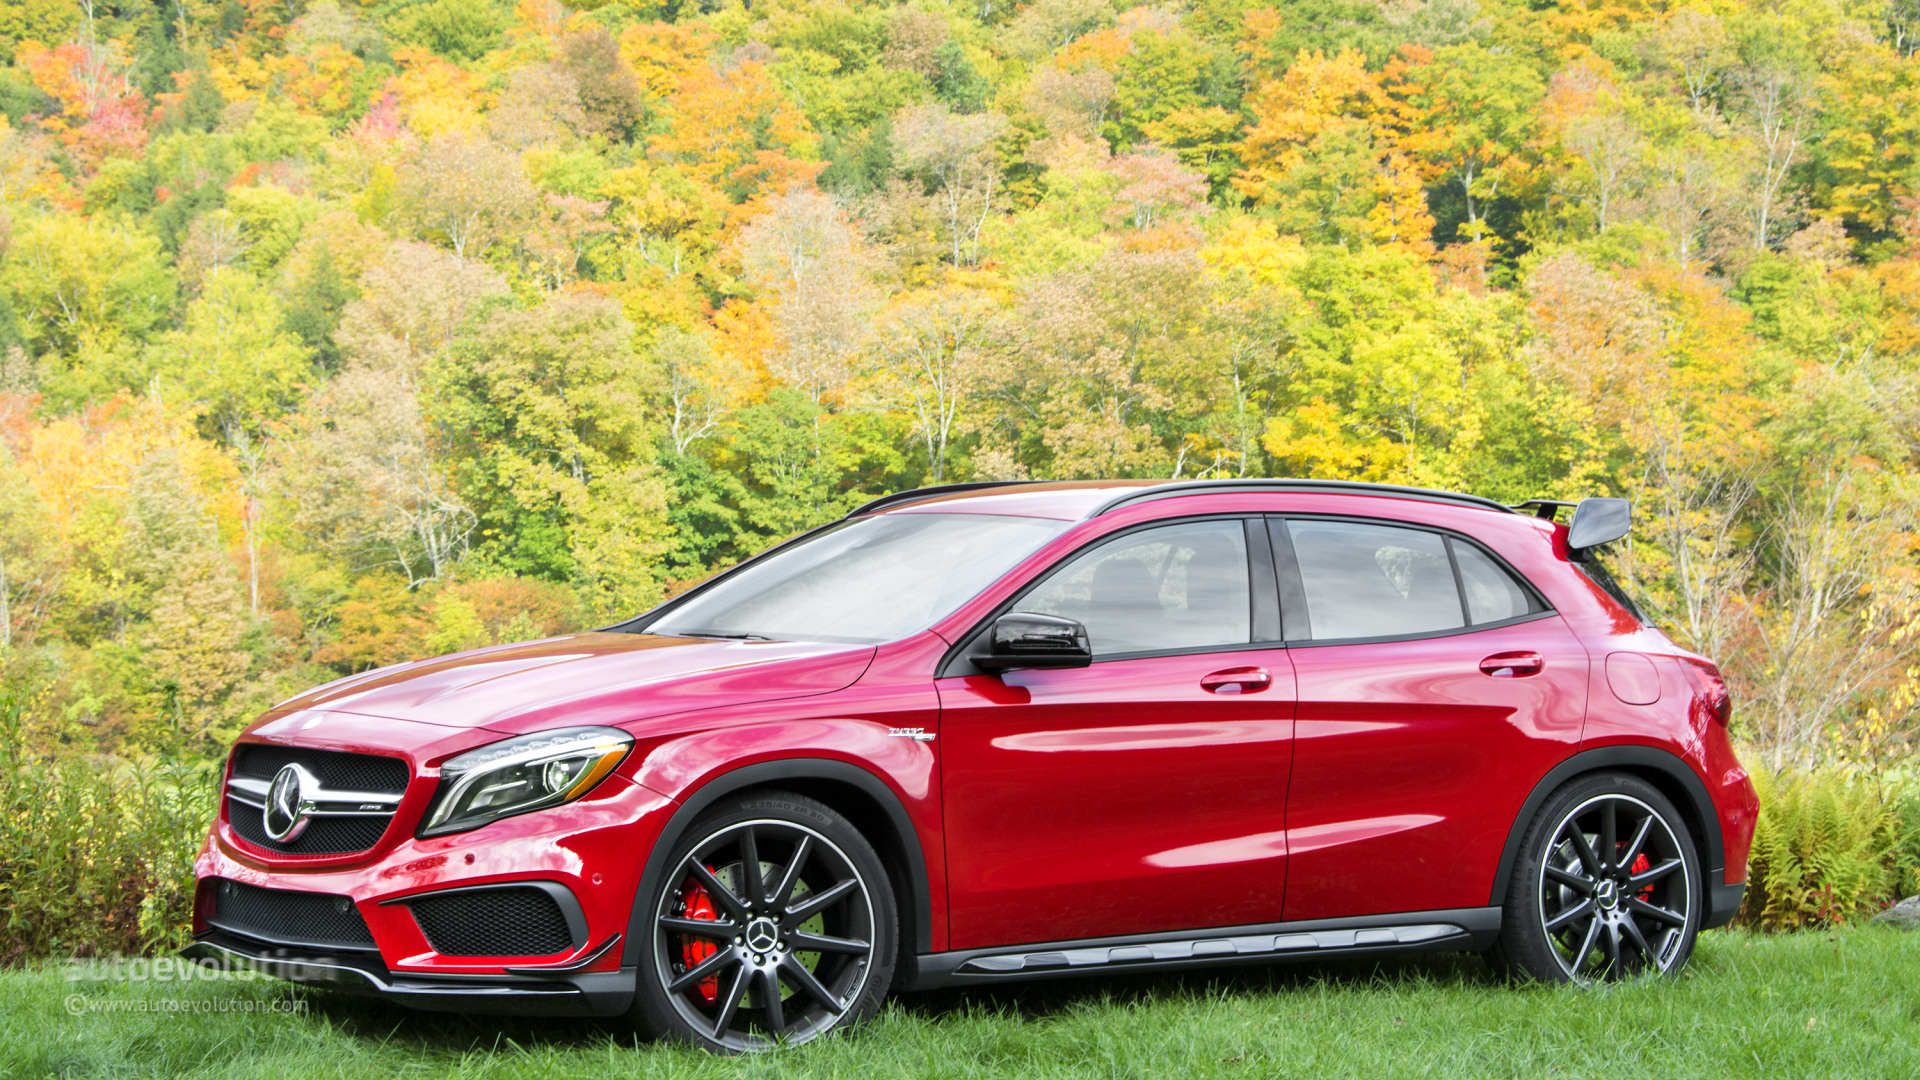 2015 Mercedes Benz Gla250 4matic Gla45 Amg Review